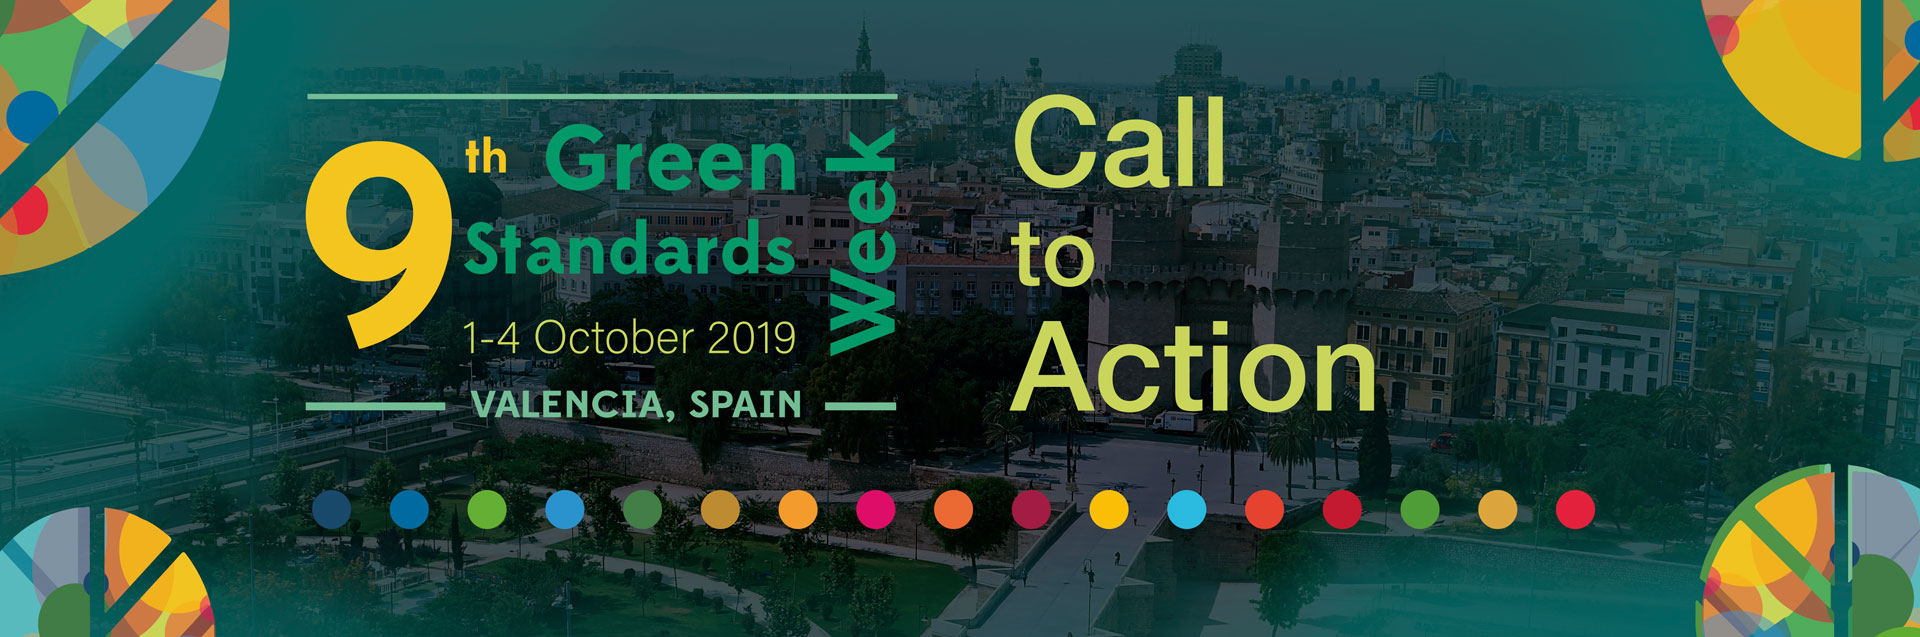 Call to Action from València